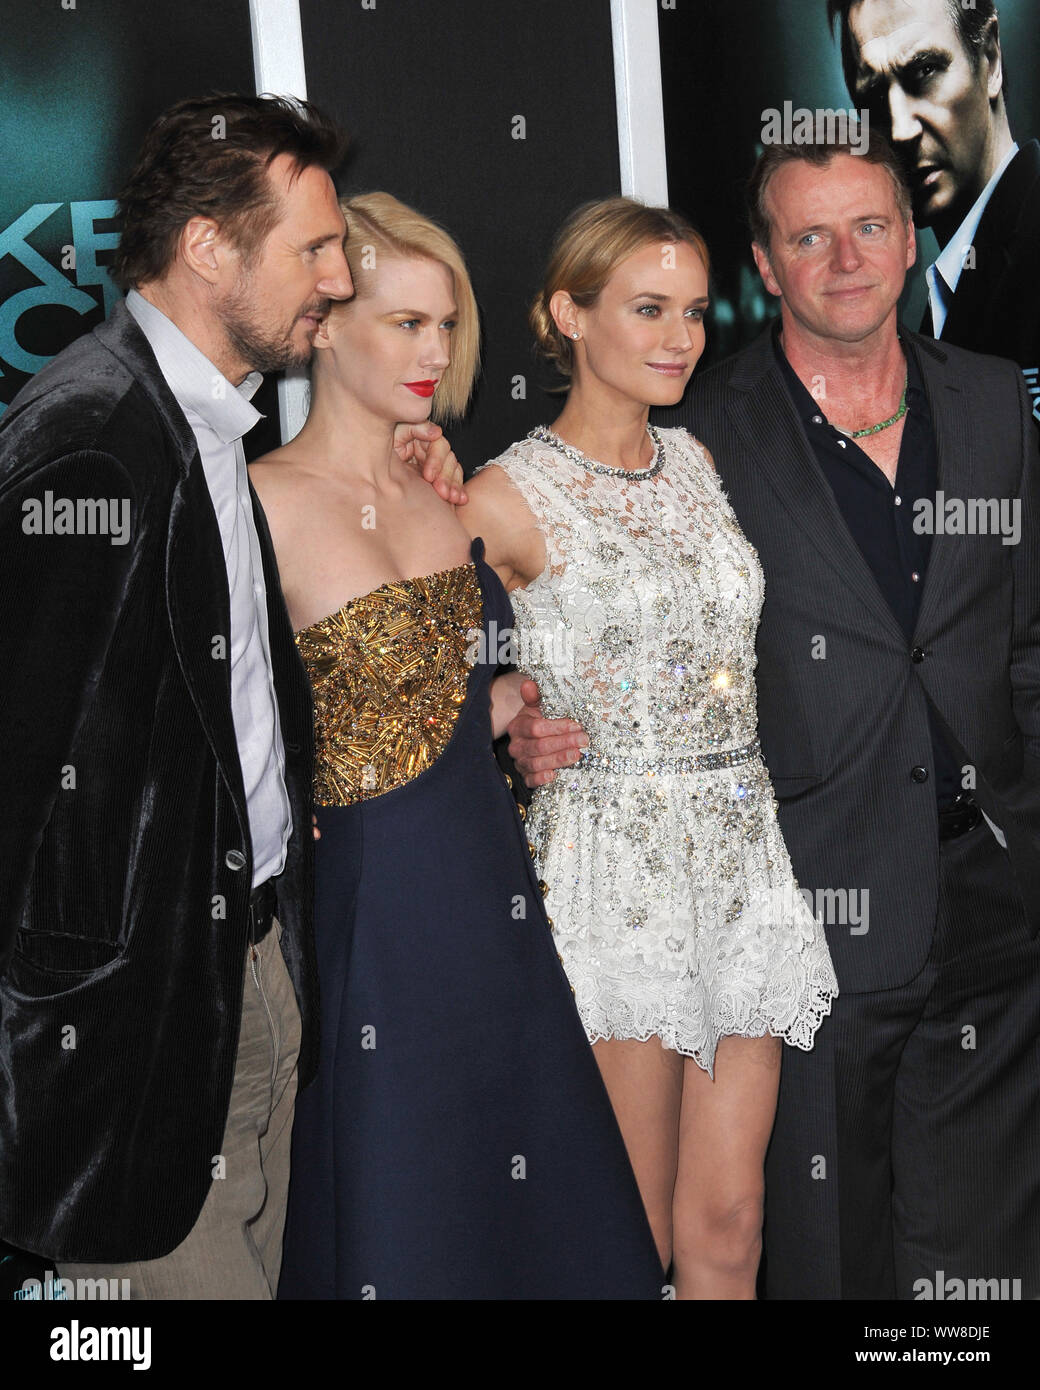 """LOS ANGELES, CA. February 16, 2011: Liam Neeson with January Jones (left) & Diane Kruger & Aidan Quinn (right) at the Los Angeles premiere of their new movie """"Unknown"""" at the Mann Village Theatre, Westwood. © 2011 Paul Smith / Featureflash Stock Photo"""